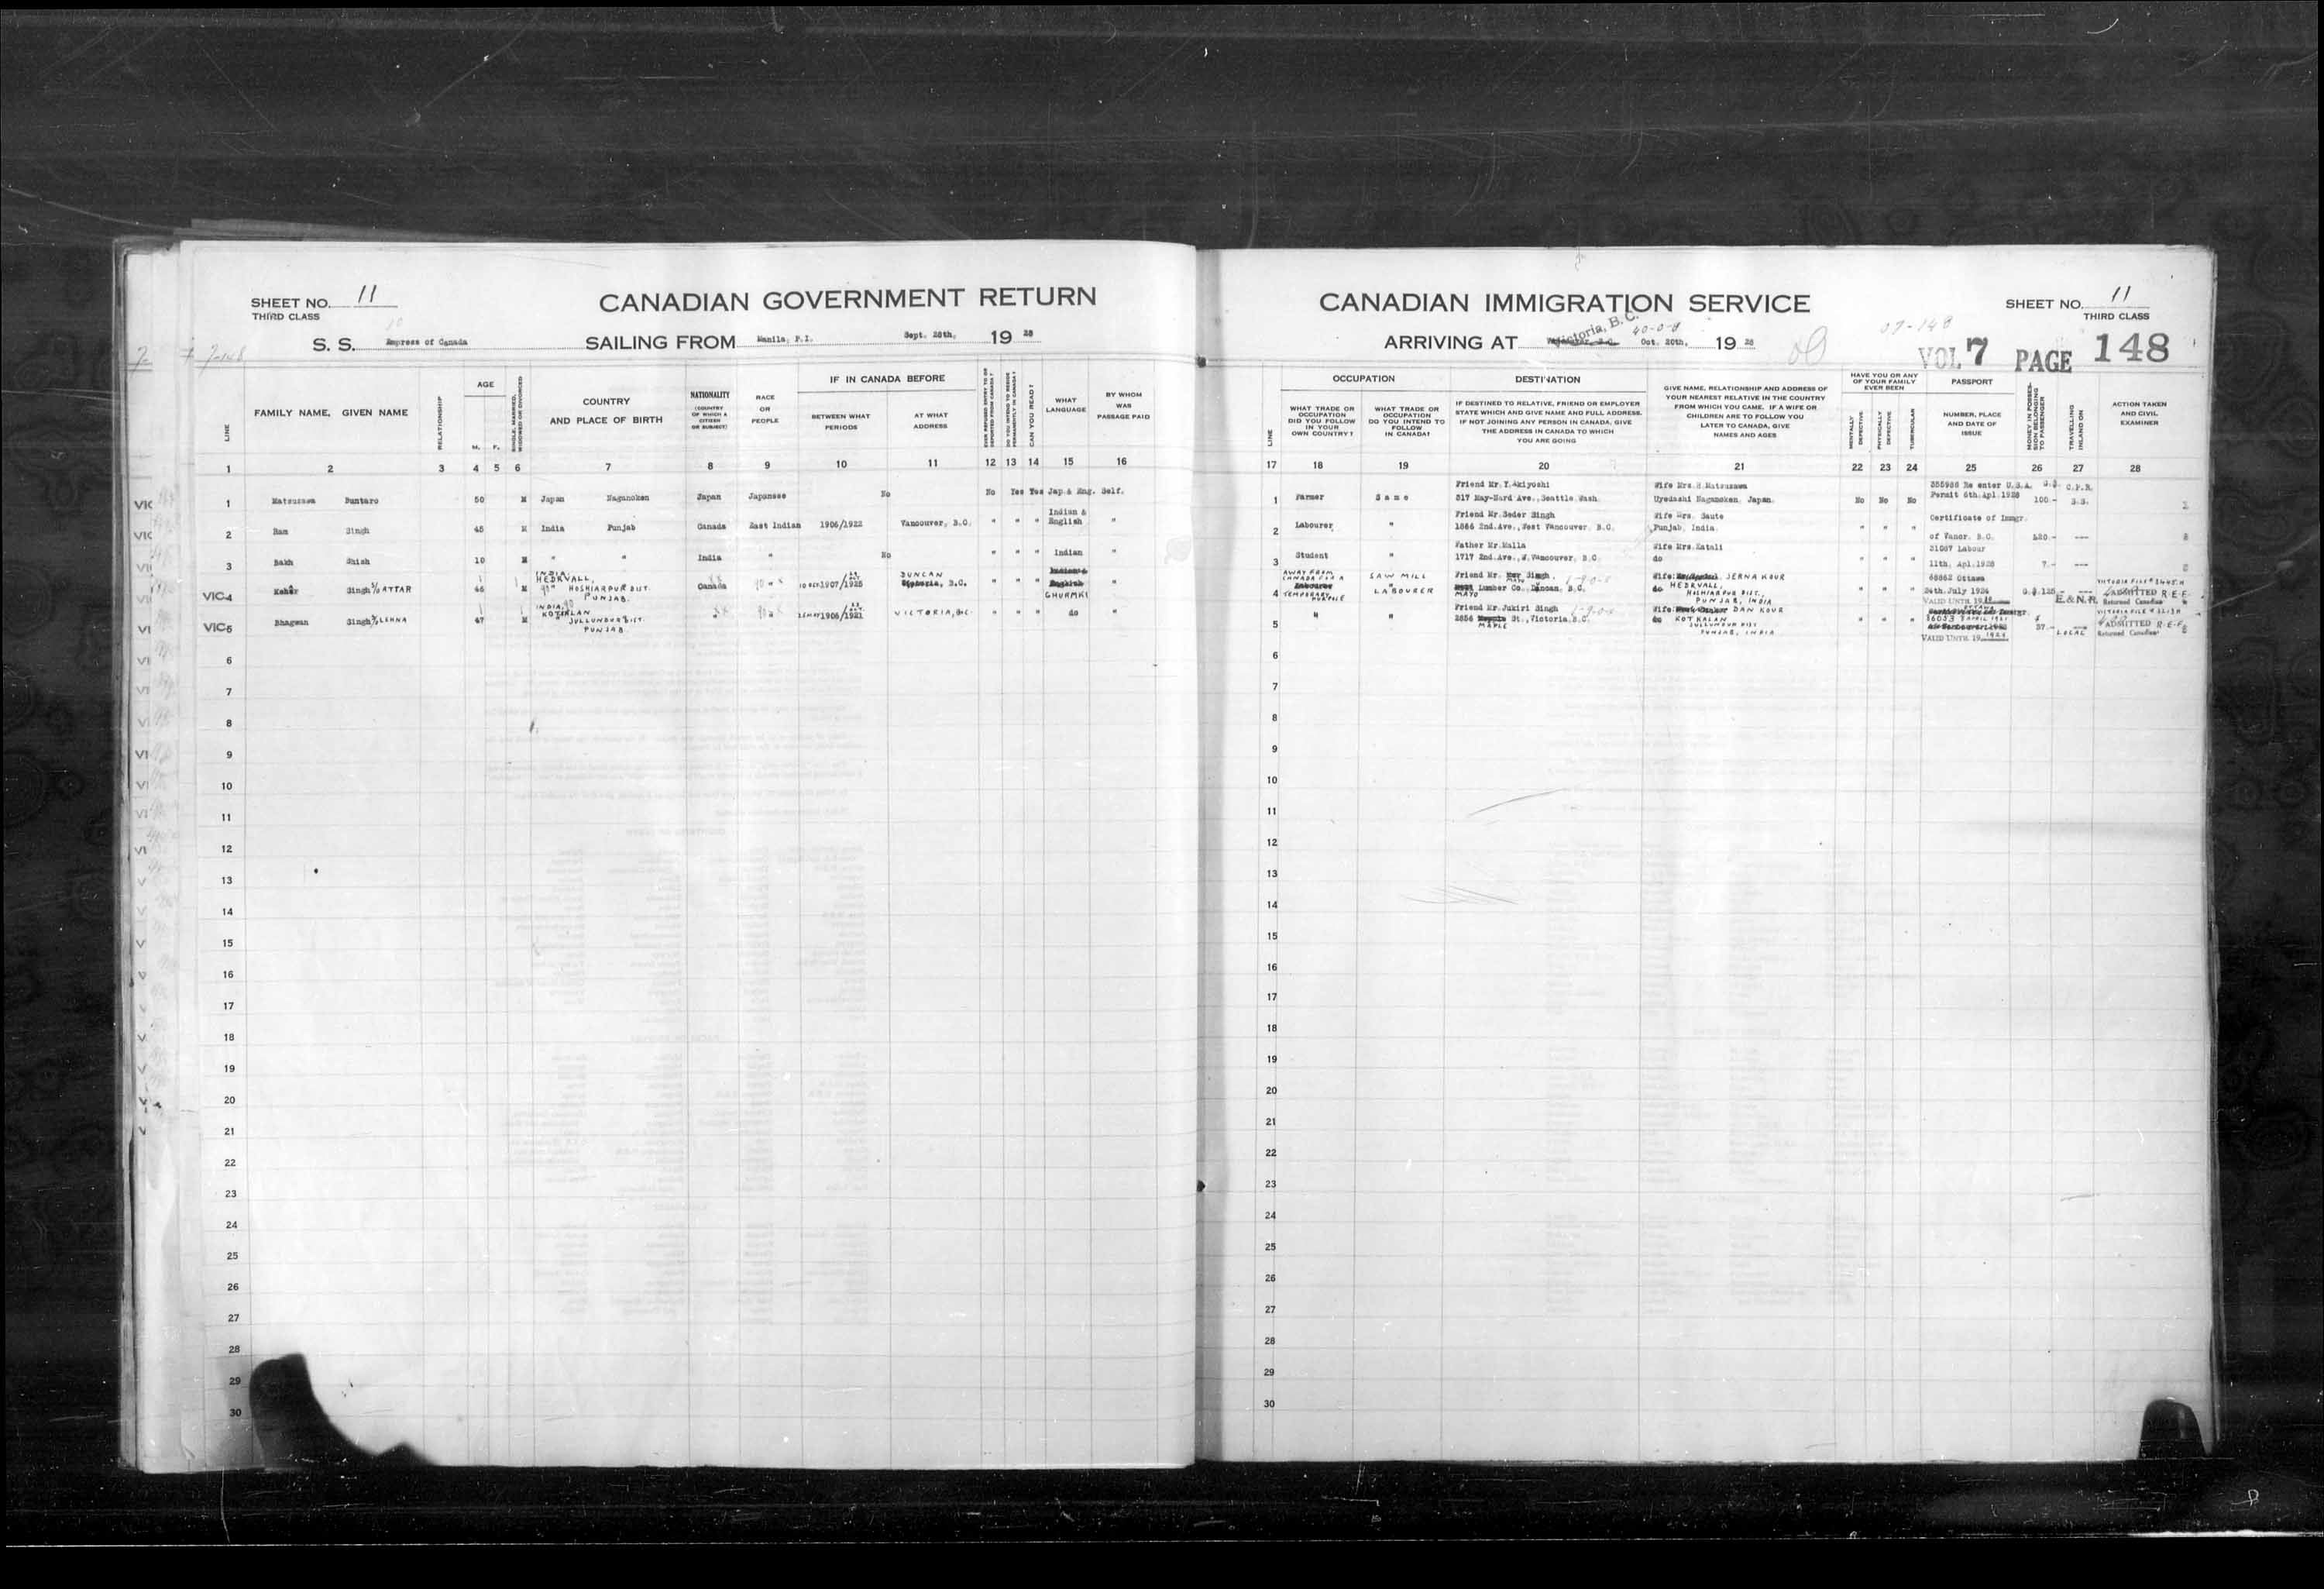 Title: Passenger Lists: Vancouver and Victoria (1925-1935) - Mikan Number: 161347 - Microform: t-14891